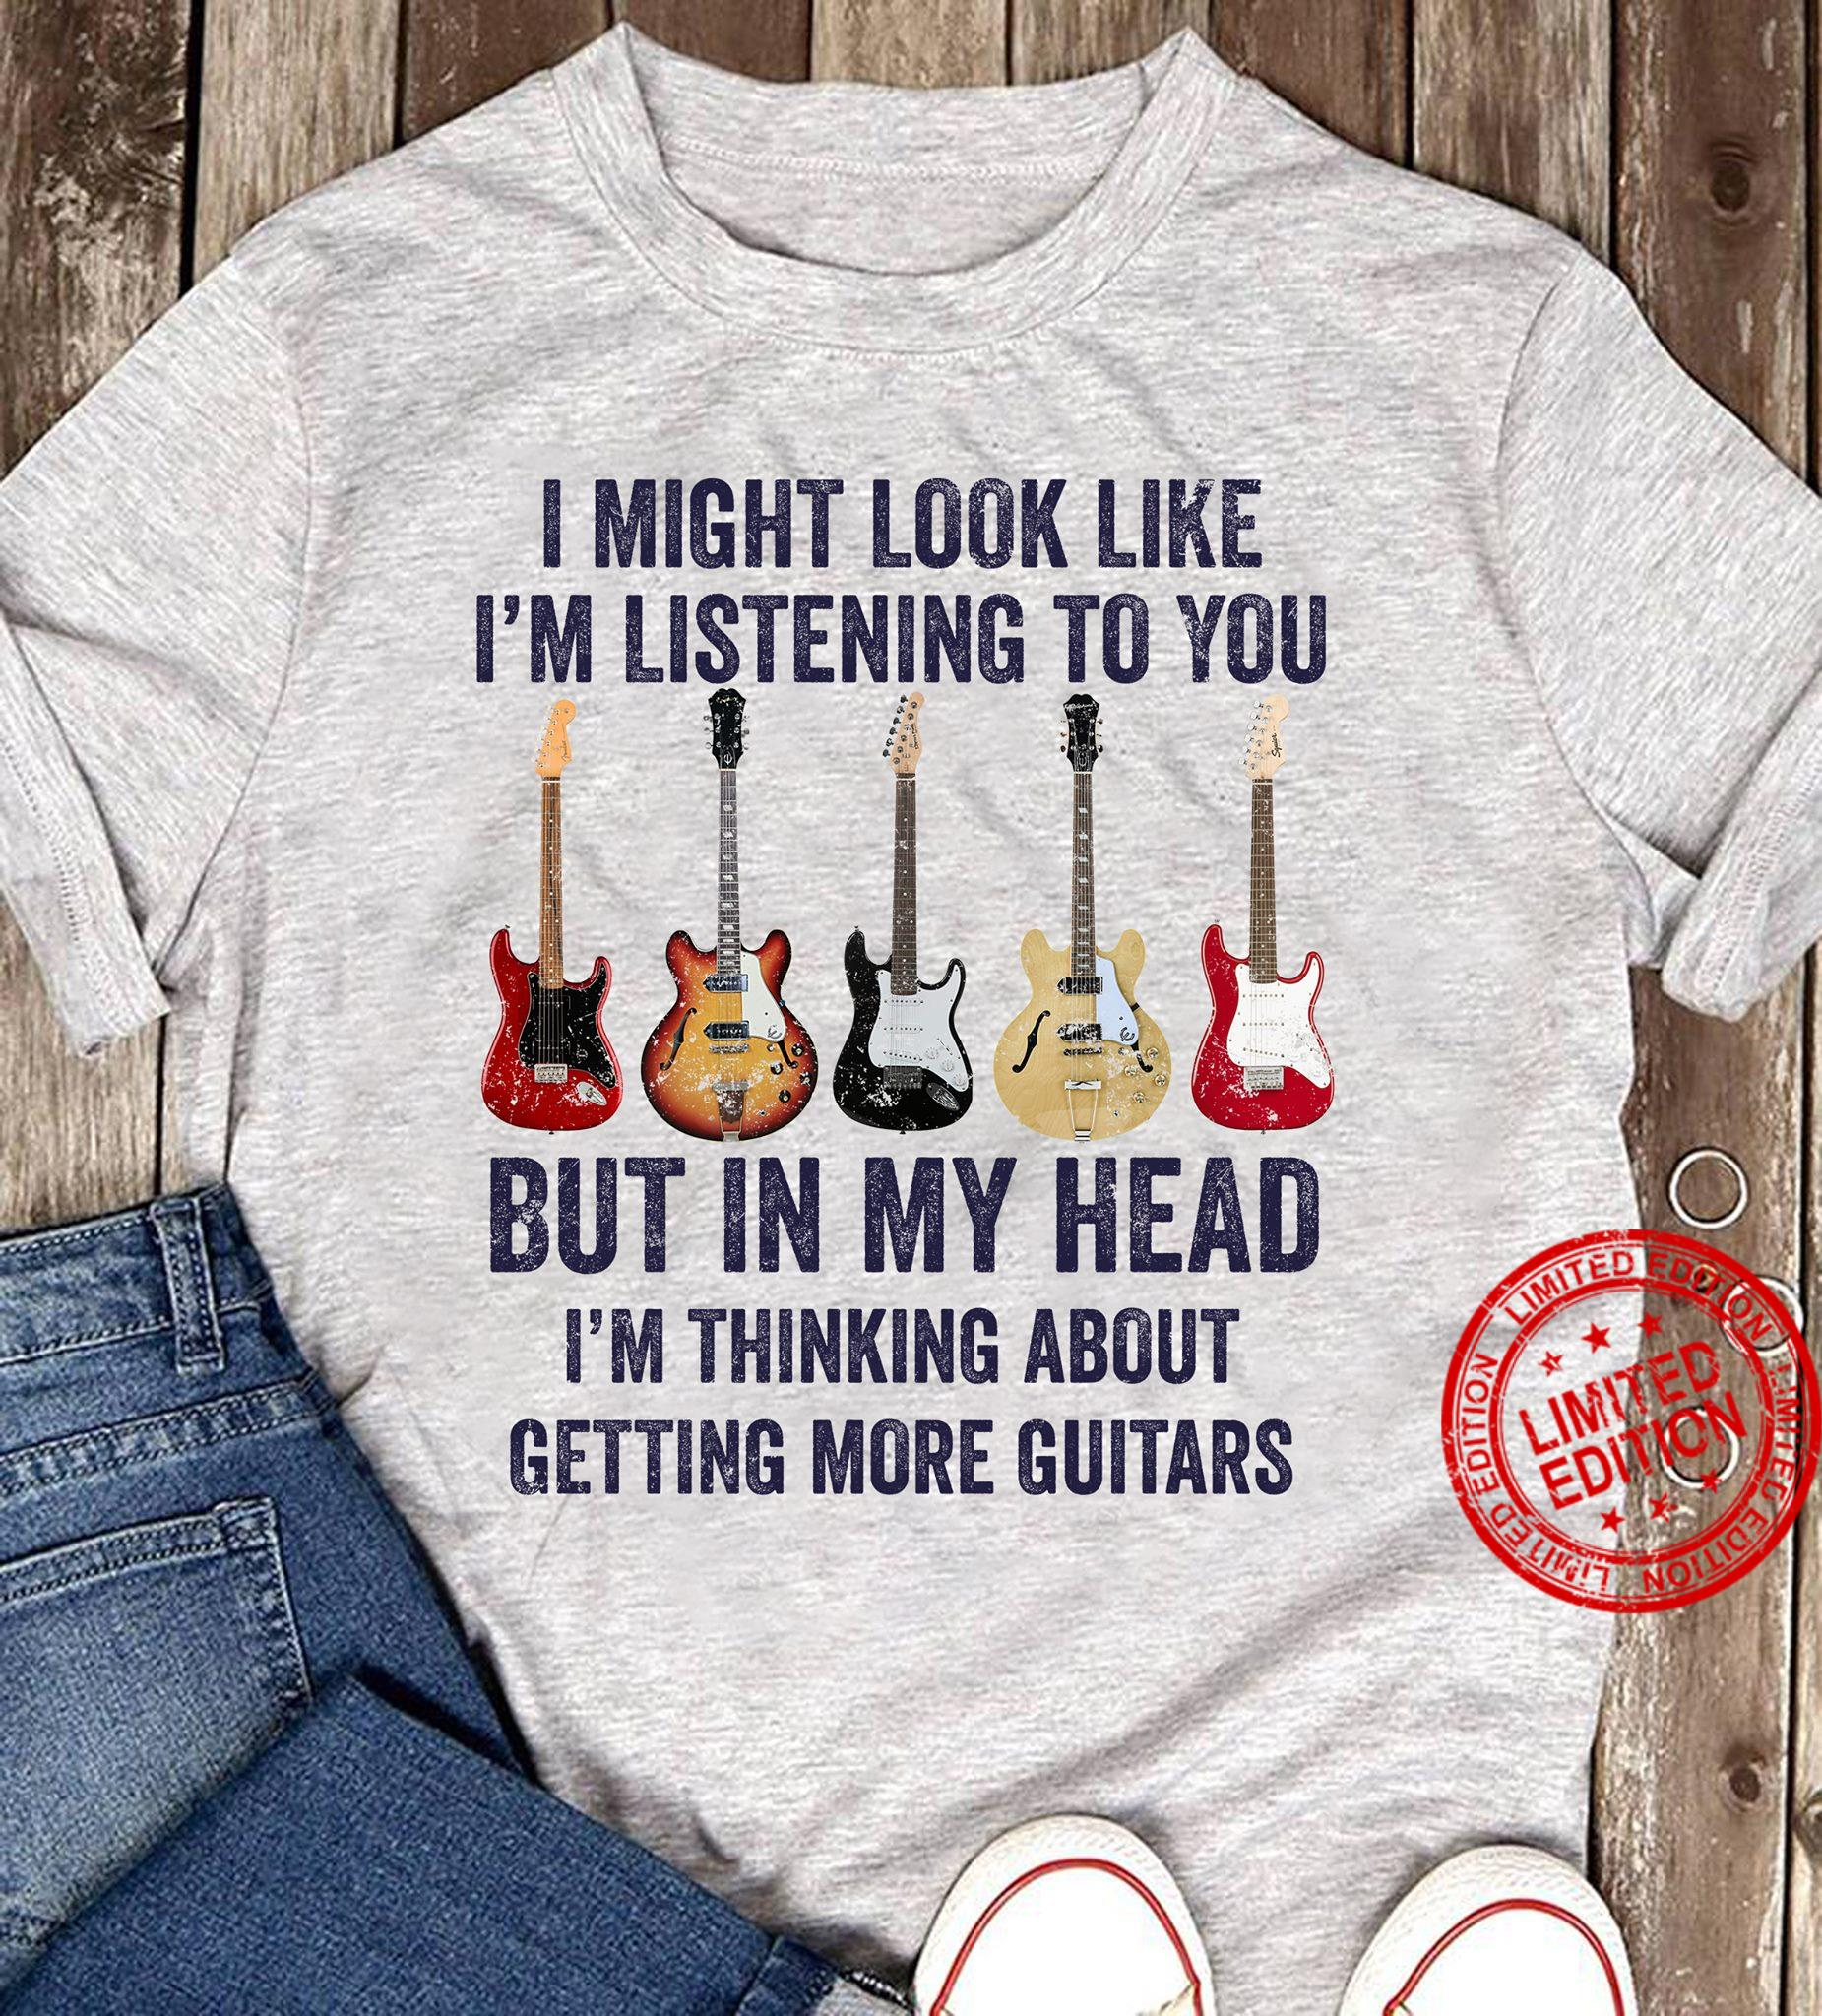 I Might Look Like I'm Listening To You But In Head I'm Thinking About Getting More Guitars Shirt